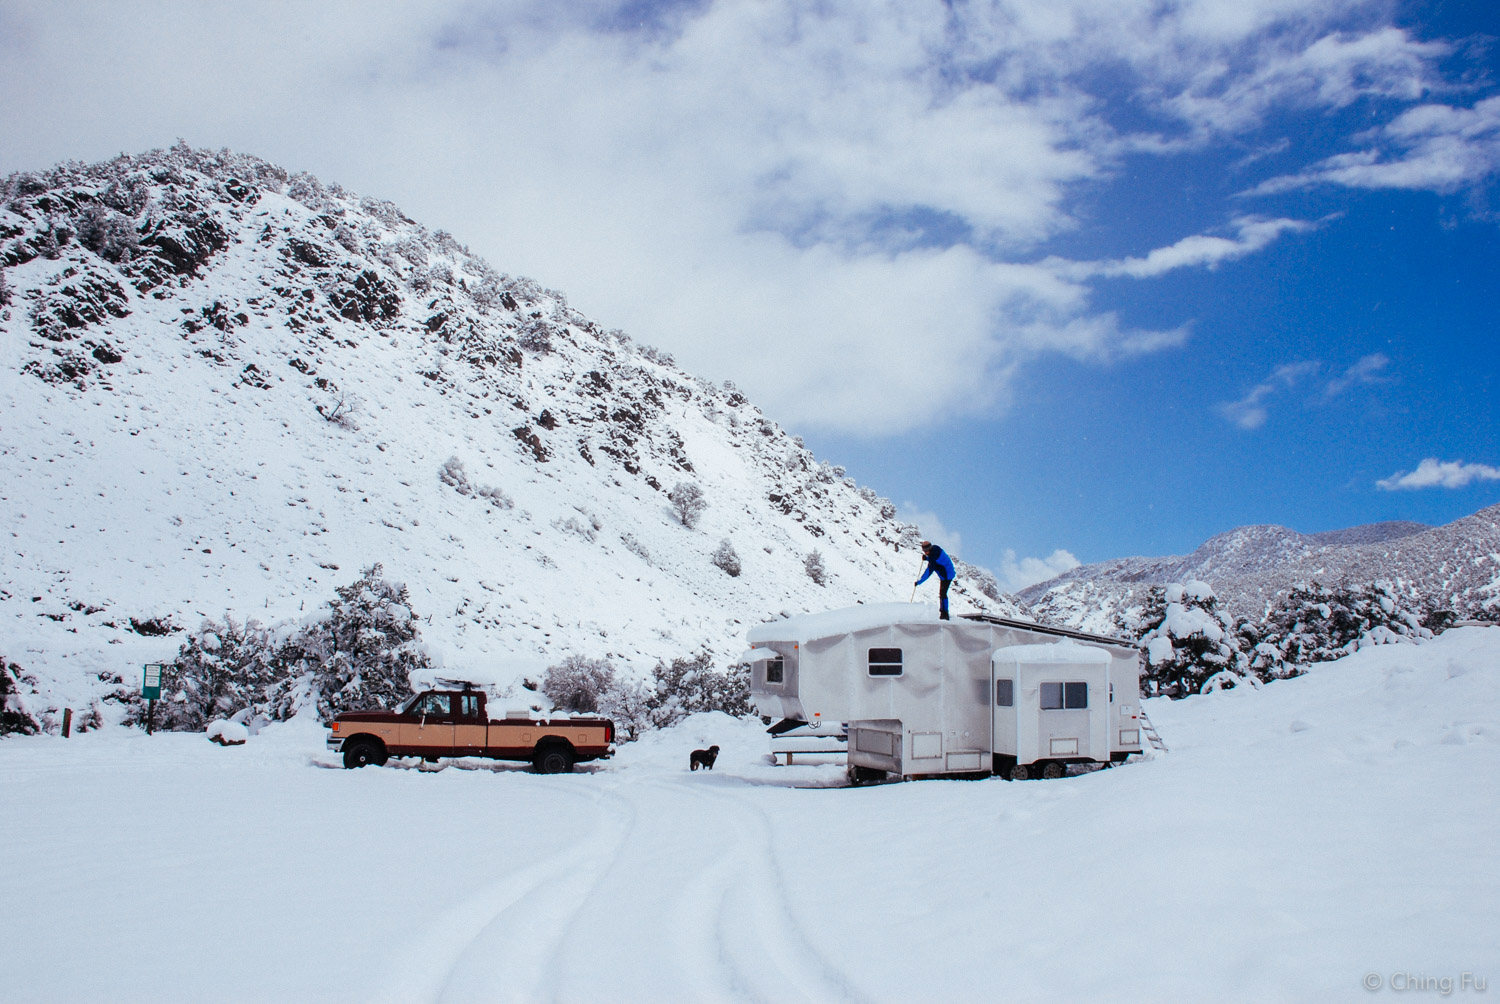 This was the first boondock site we found via Campendium. It was in  Salida, CO . The snow was unexpected.